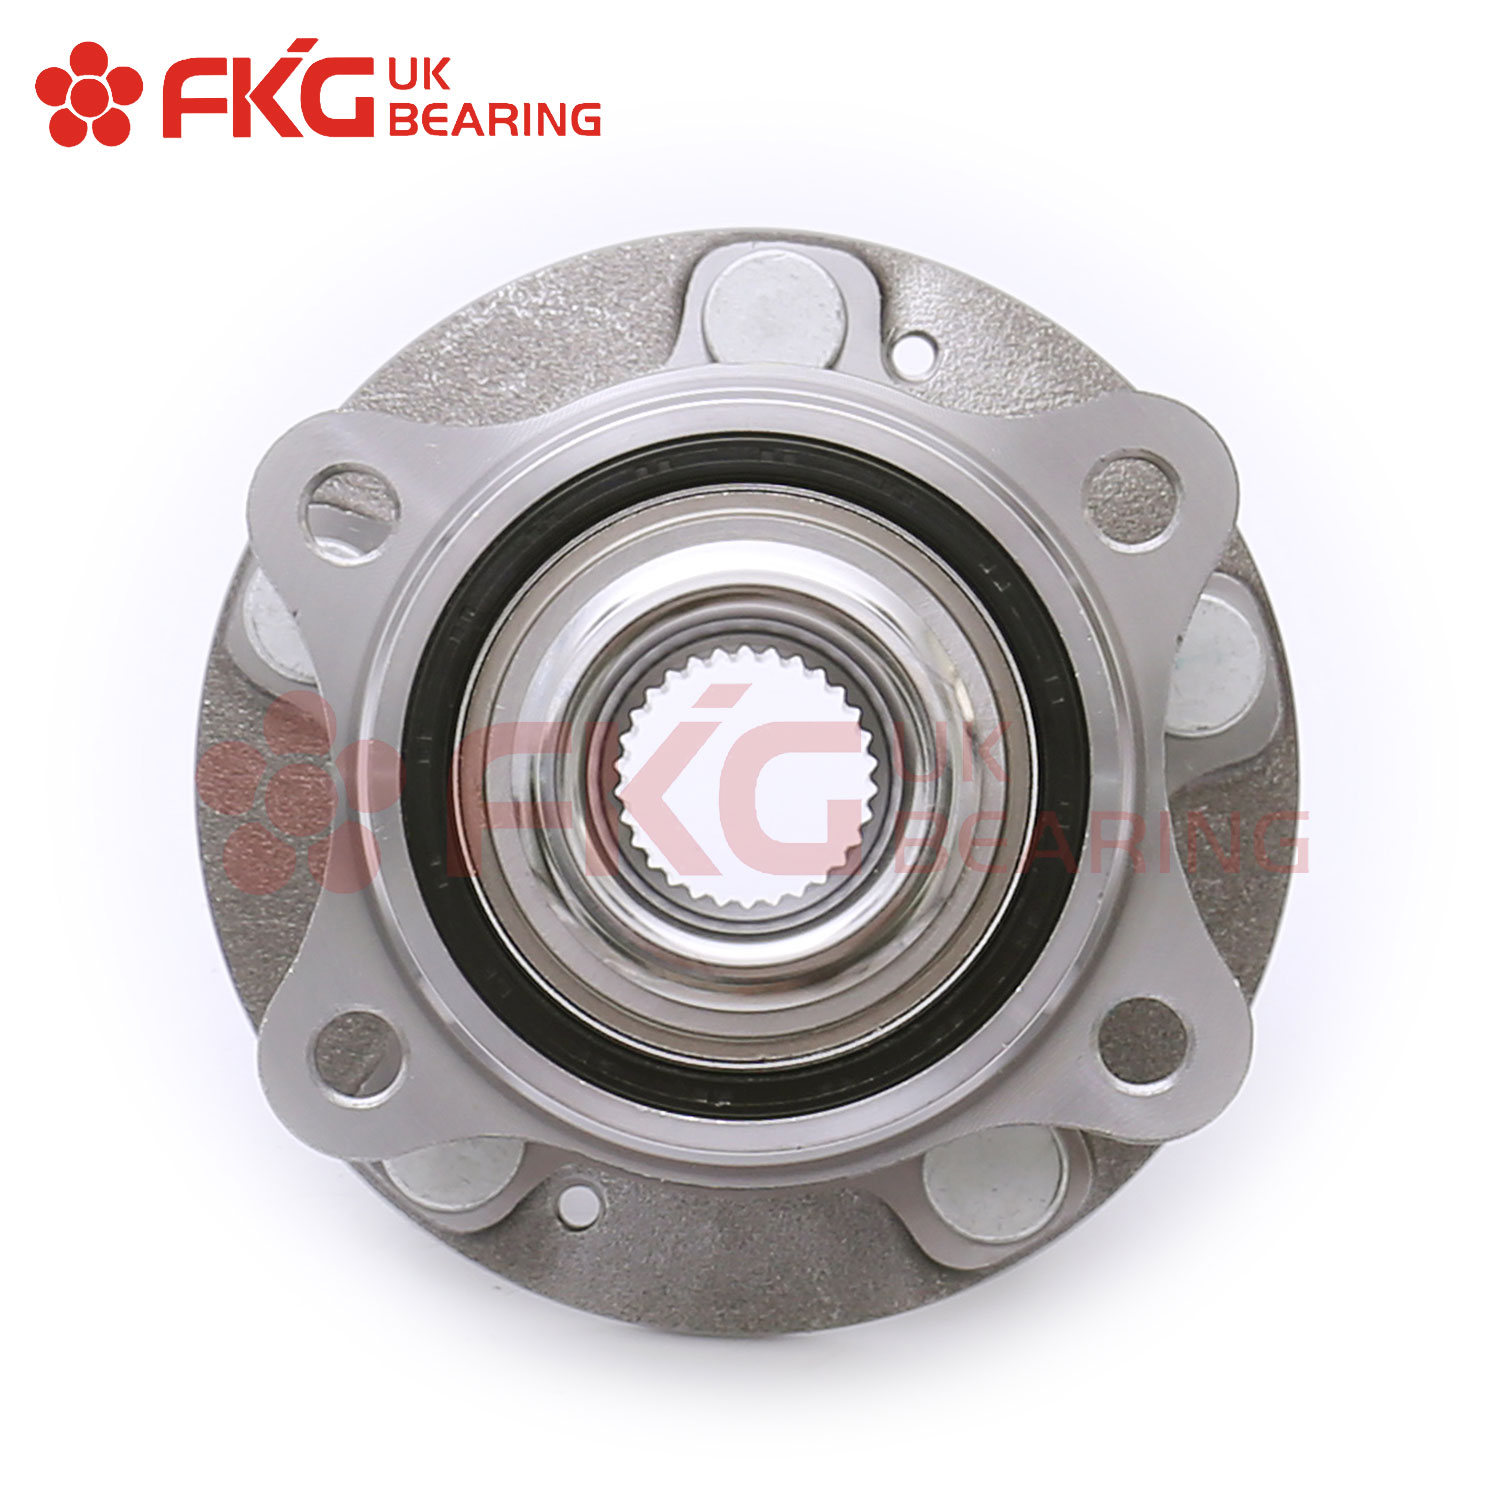 One Bearing Included With Two Years Manufacturer Warranty 2011 fits Hyundai Veracruz Rear Hub Bearing Assembly